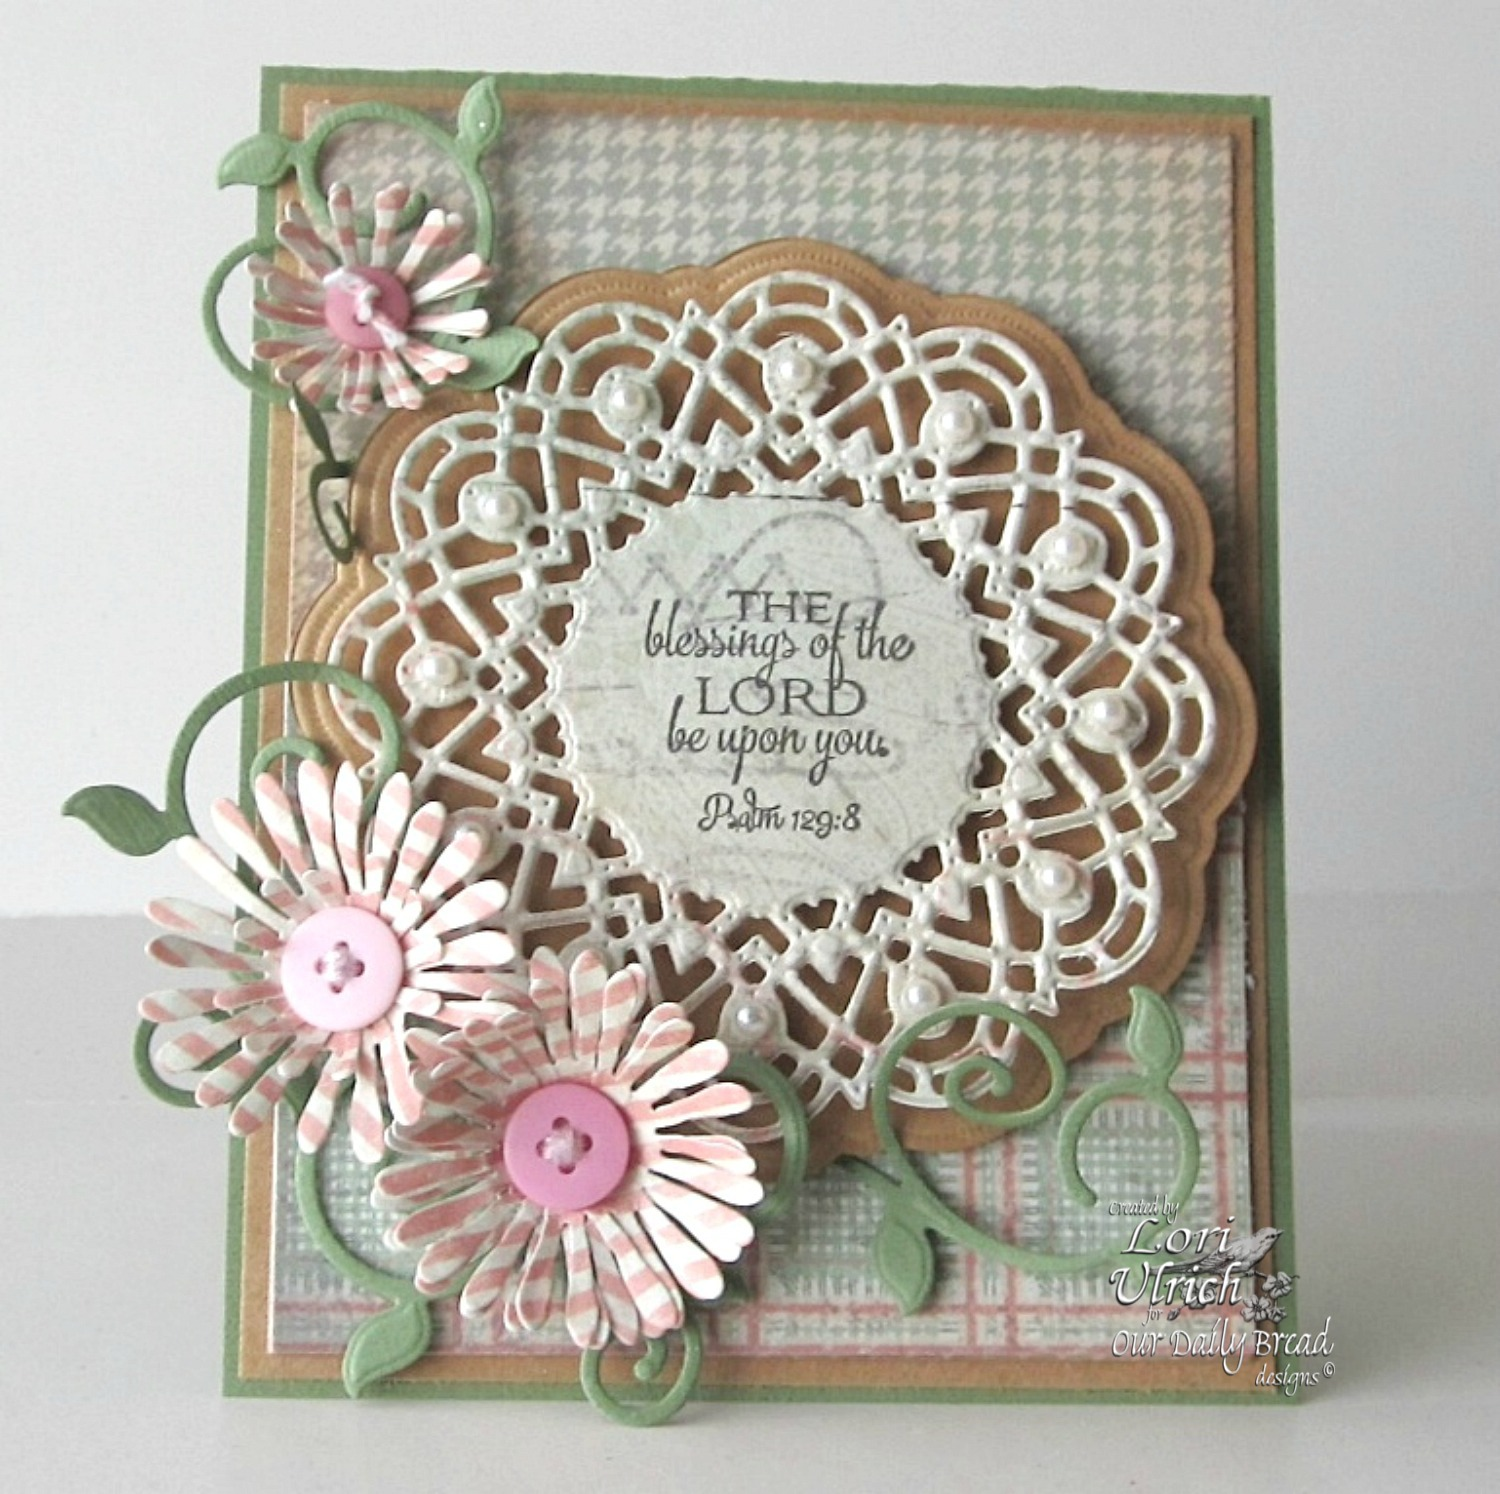 Stamps - Our Daily Bread Designs Birthday Doily, Doily Blessings, ODBD Custom Fancy Foliage Die, ODBD Custom Doily Die, ODBD Custom Asters and Leaves Die, Soulful Stitches Paper Collection